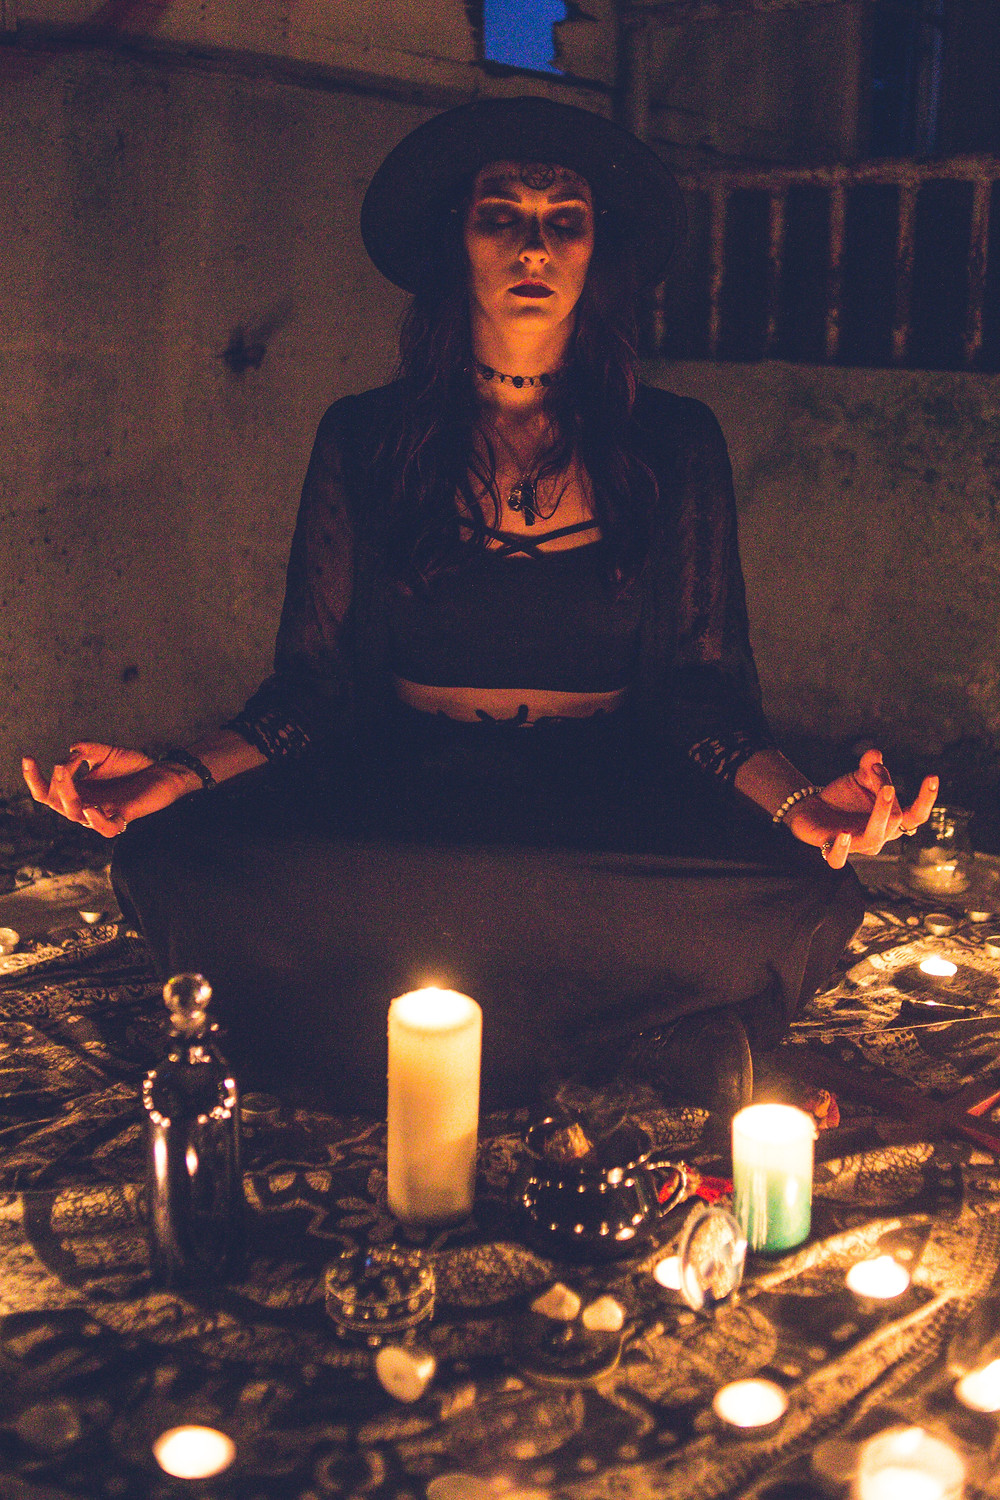 Candle use during rituals and spell castings is very common but most of the time there is not too much thought put into the actual candles and what they can invoke themselves.